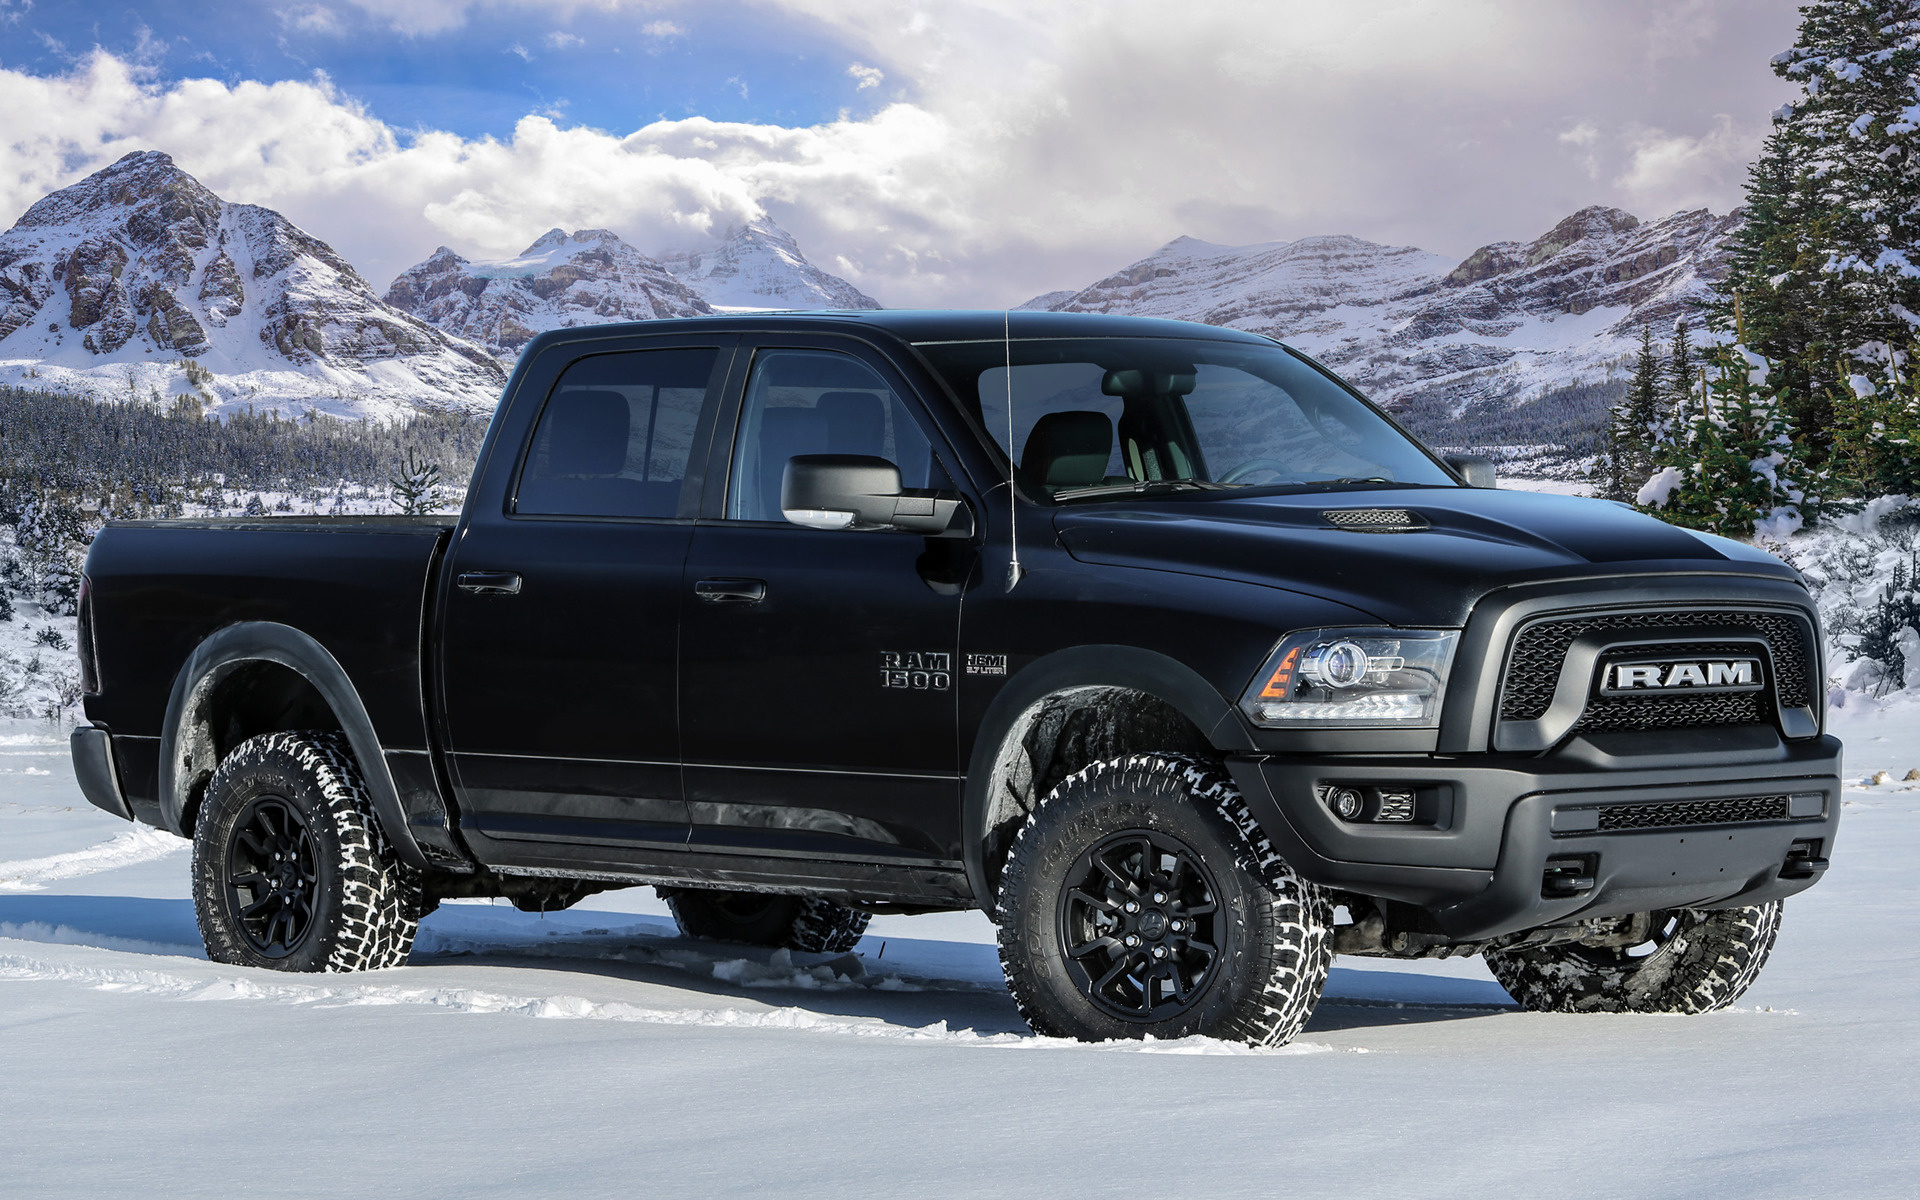 2017 Ram 1500 Rebel Black Crew Cab Wallpapers And Hd Images